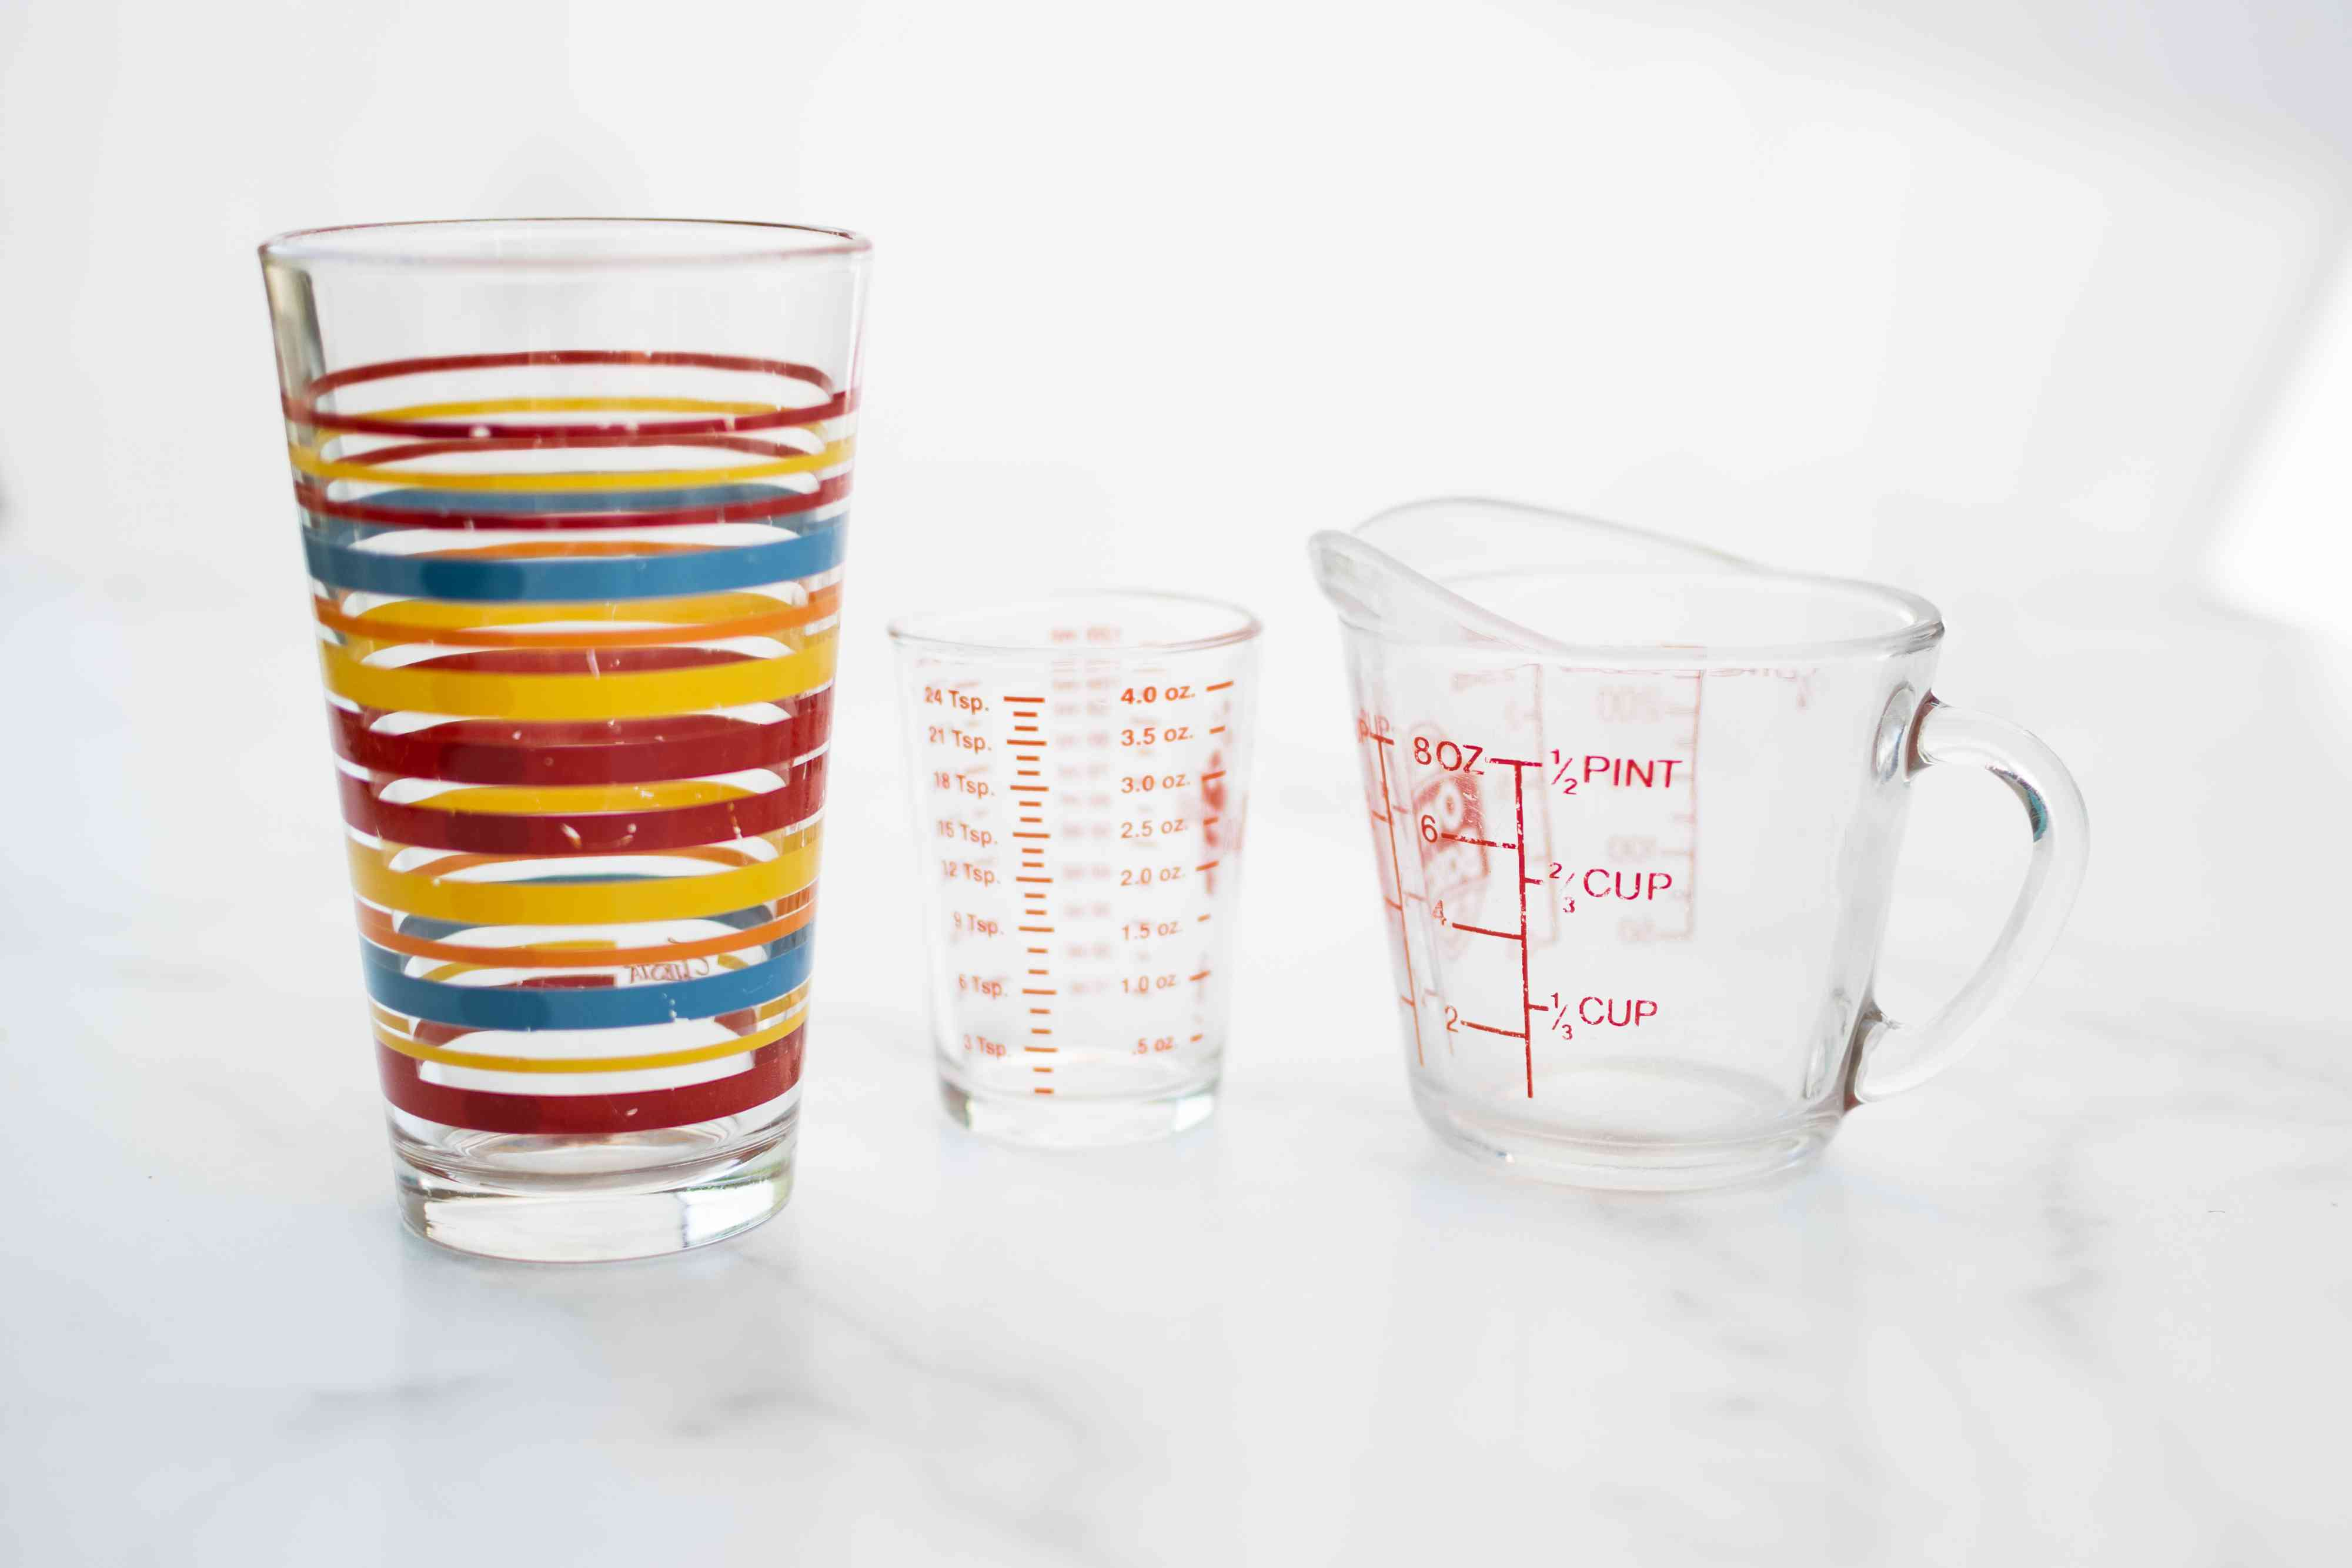 Printed glassware and measuring cups not placed in dishwasher